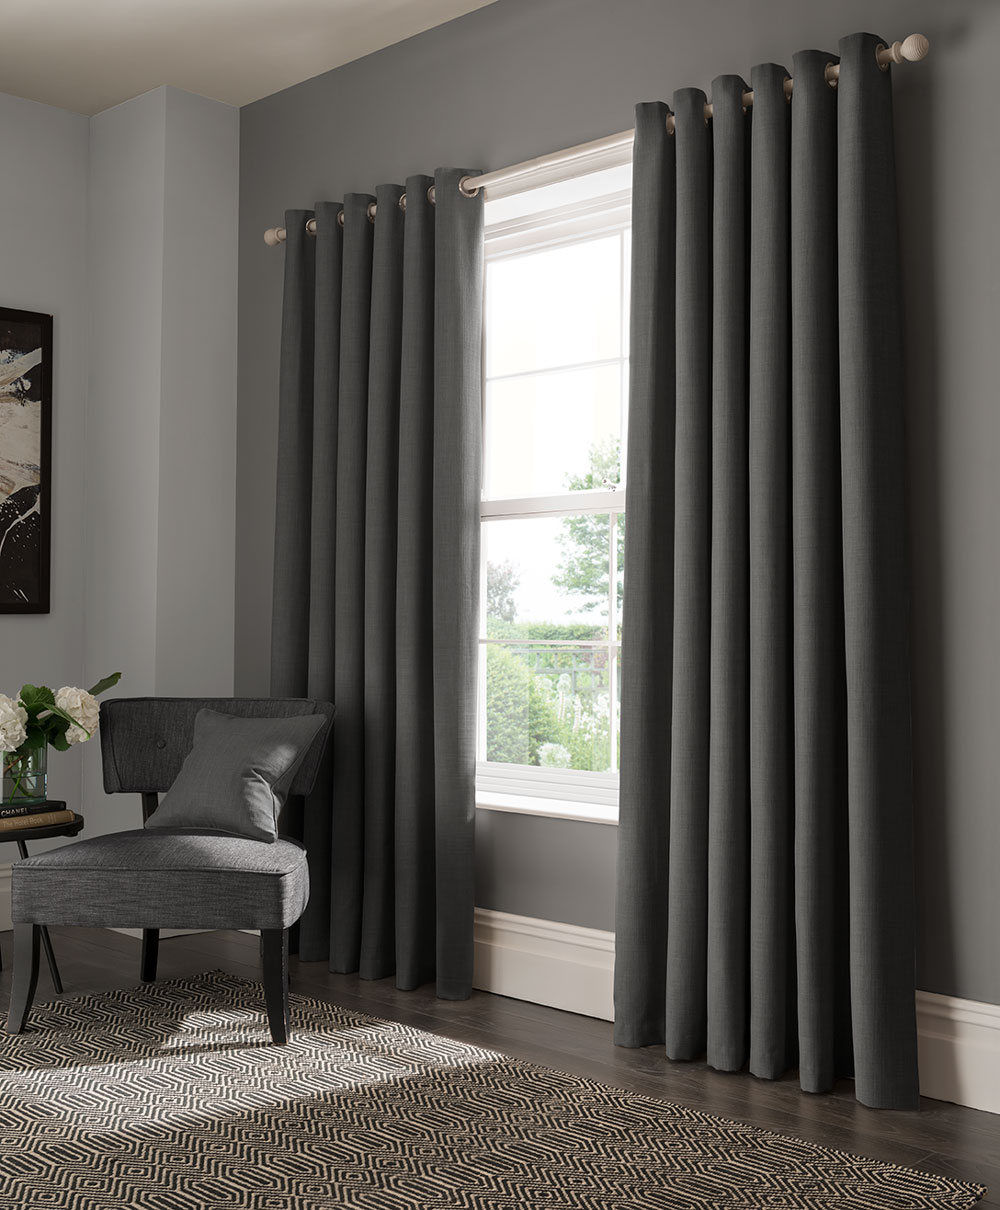 Elba Eyelet Curtains Ready Made Curtains - Steel - by Studio G